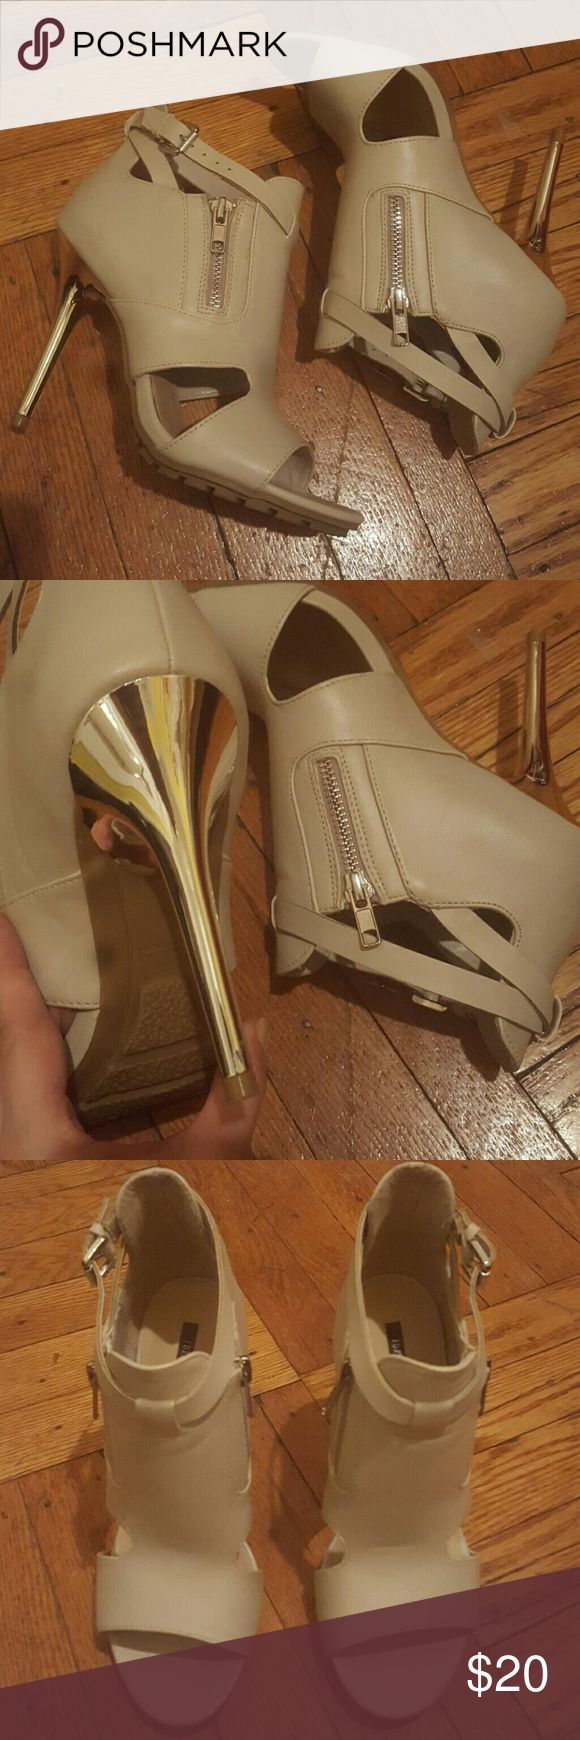 Nude open toe Silver spiked heels. Forever 21 Nude open toe Silver spiked heels. Forever 21. Worn once. Forever 21 Shoes Heels